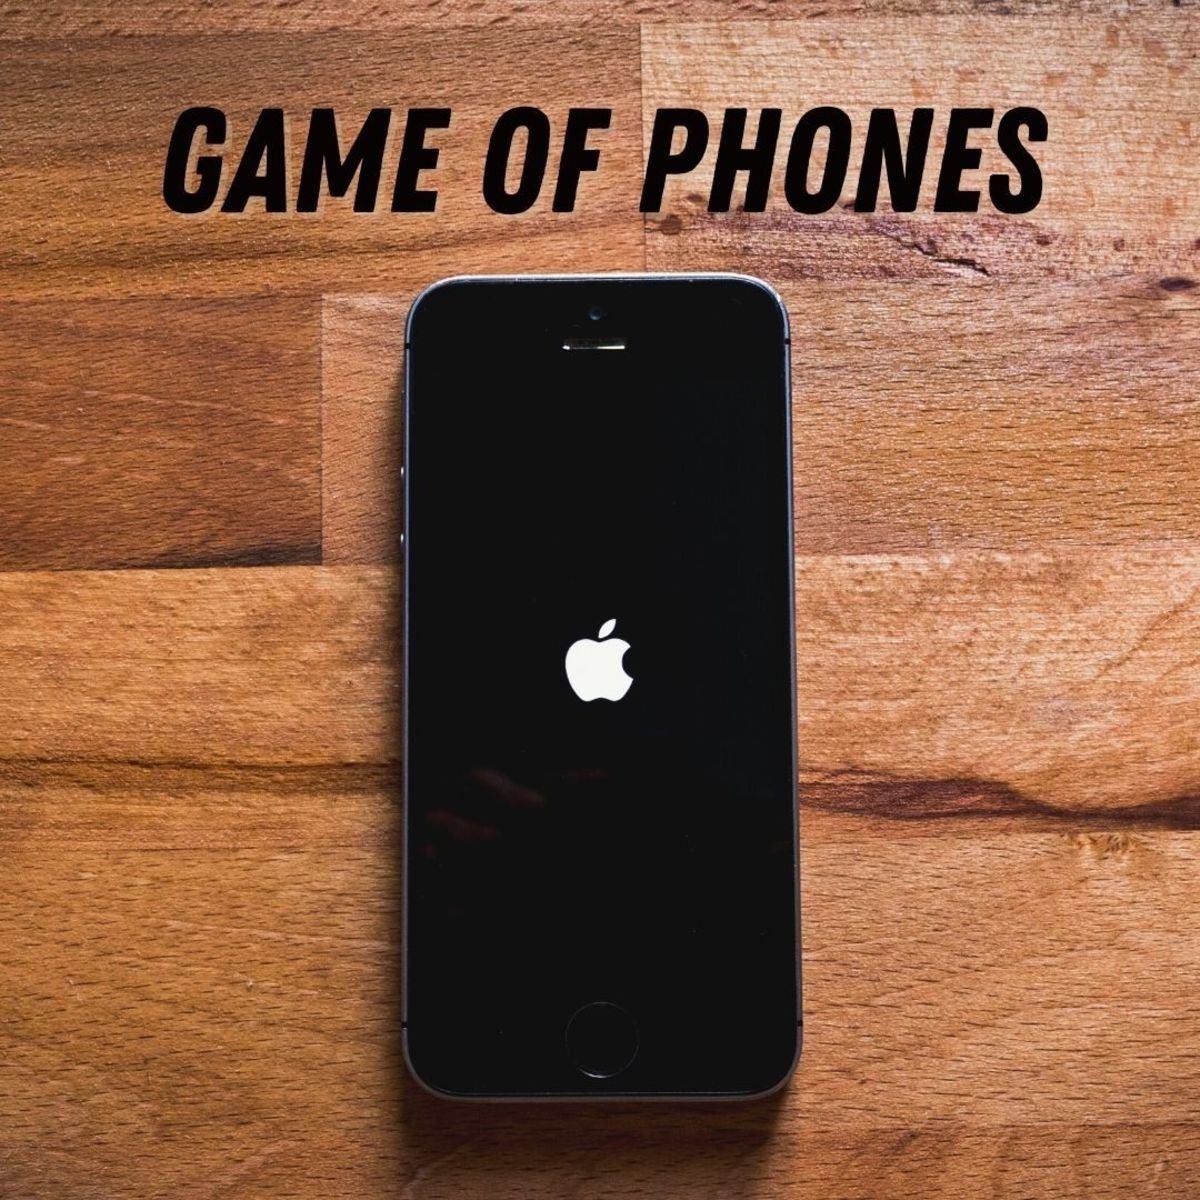 """Game of Phones is a fun play on """"Game of Thrones."""""""